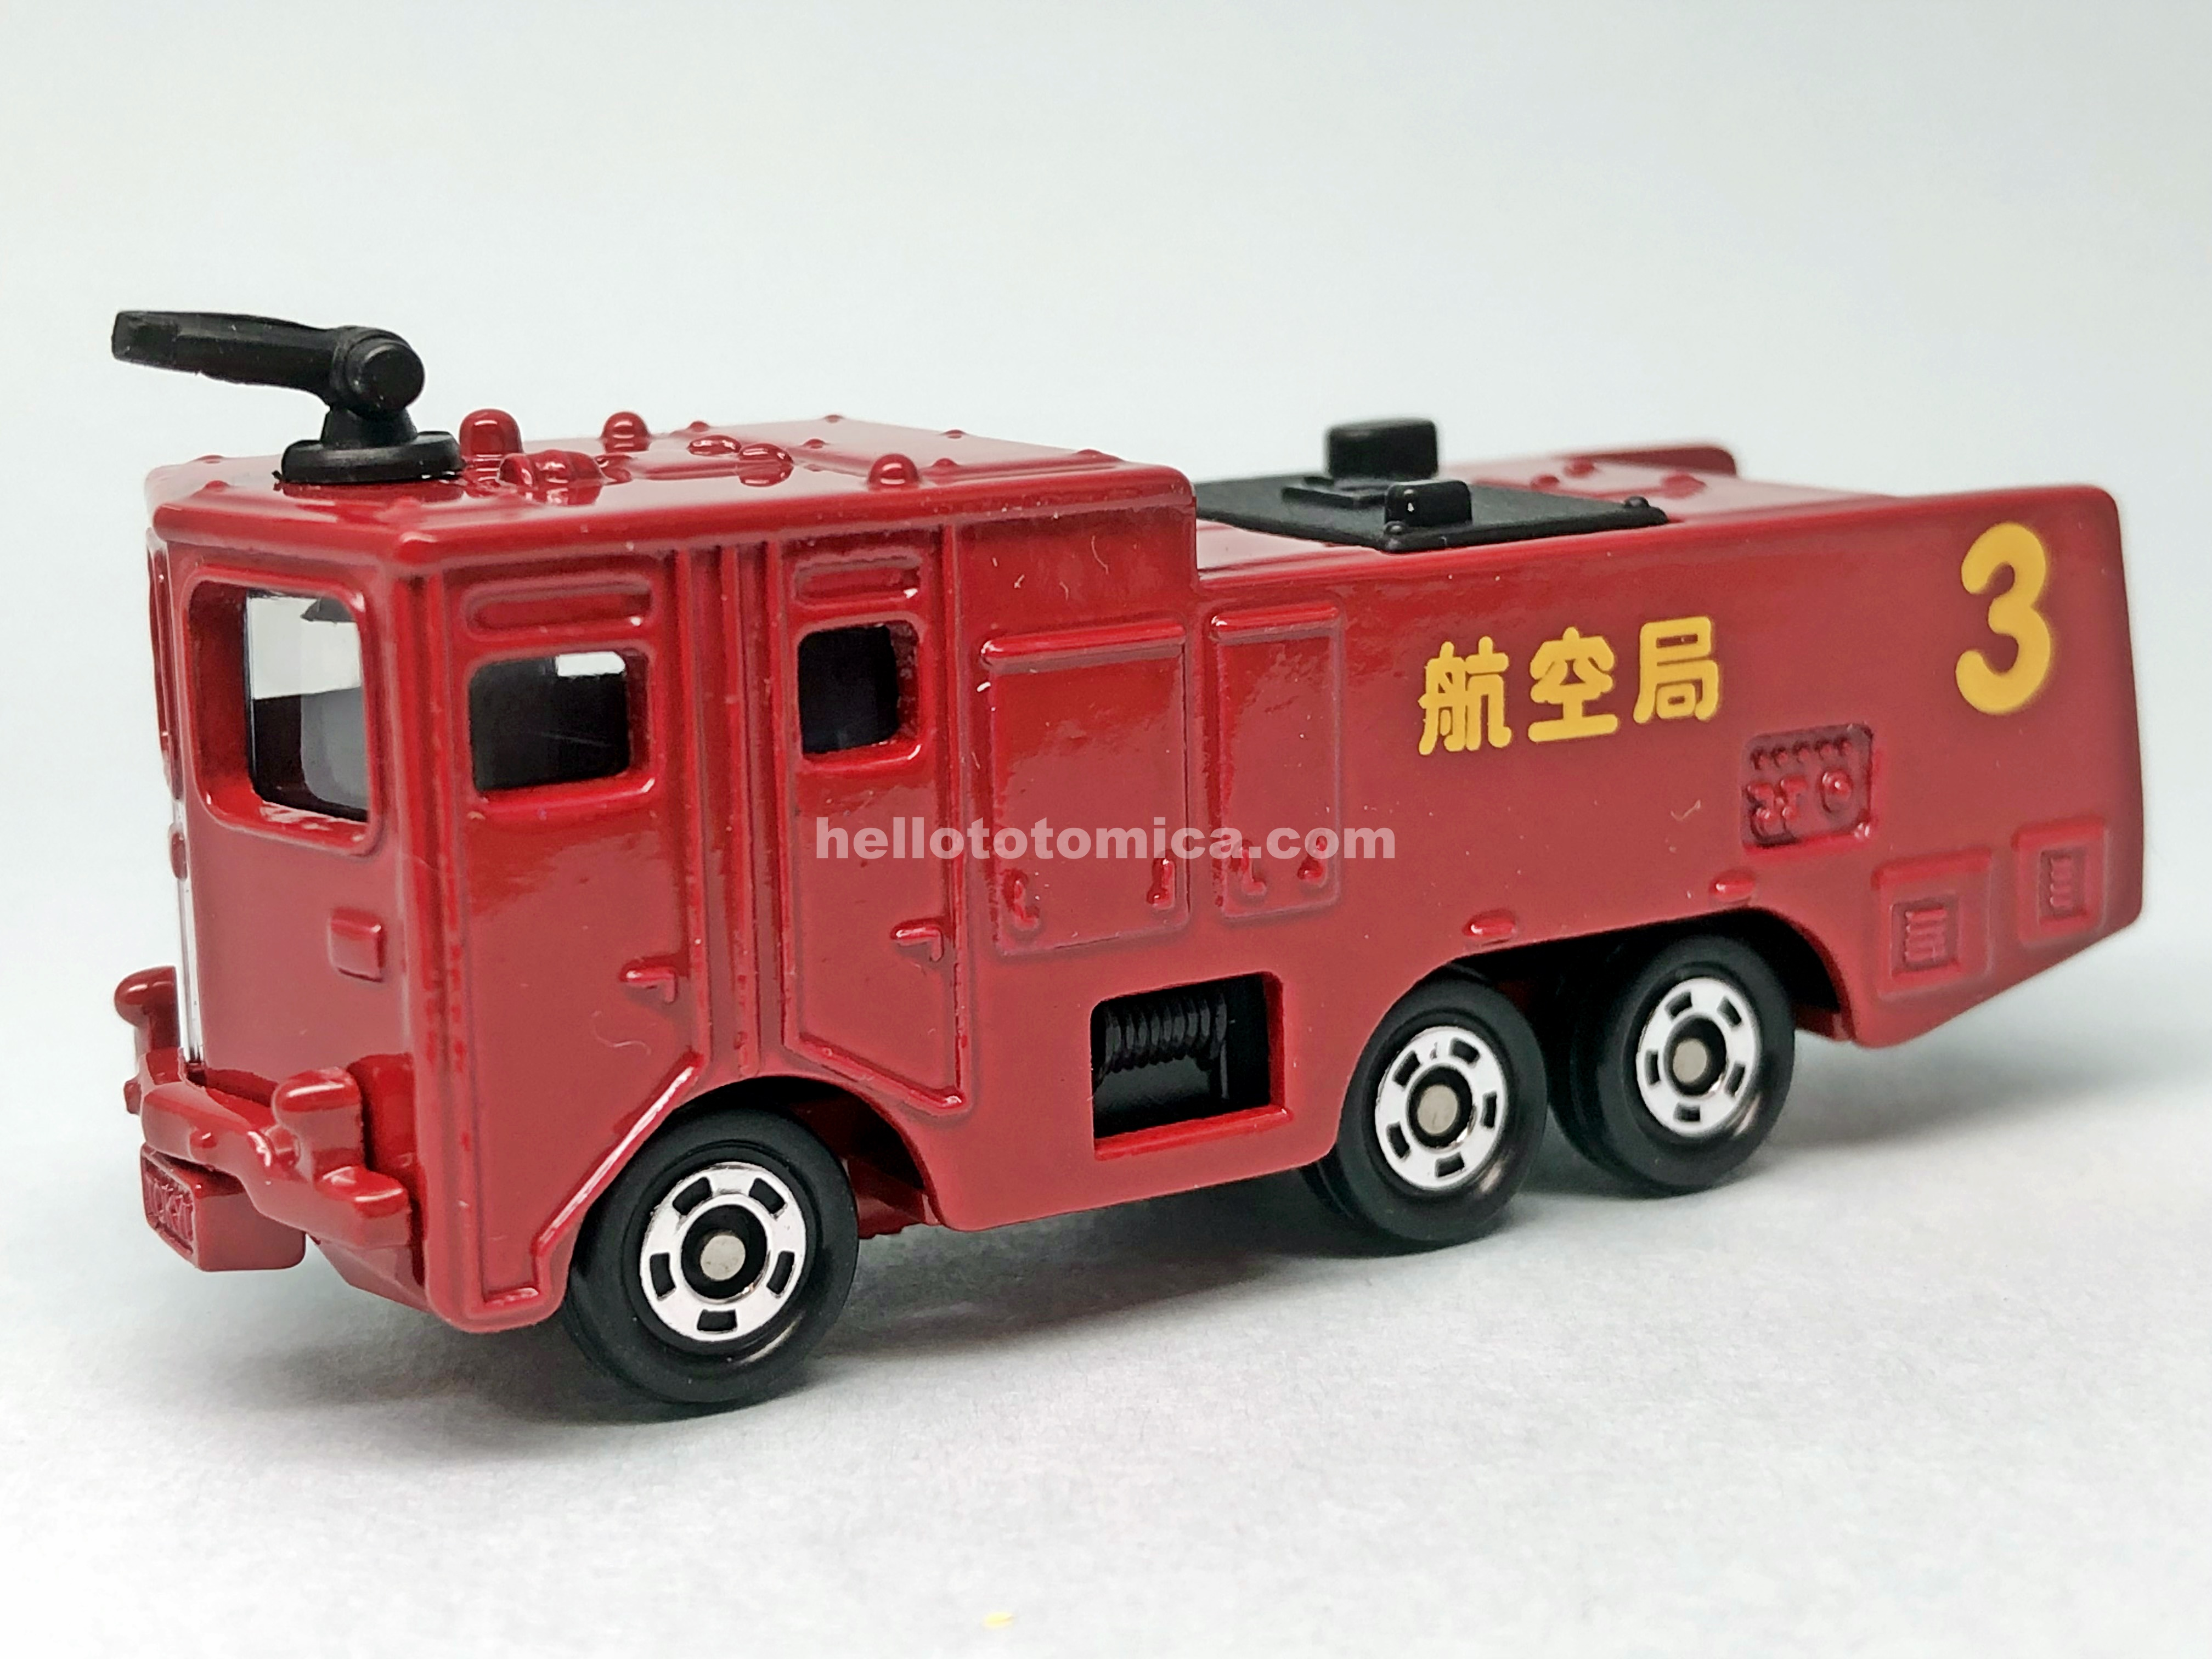 94-1 TOKYU CHEMICAL FIRE ENGINE